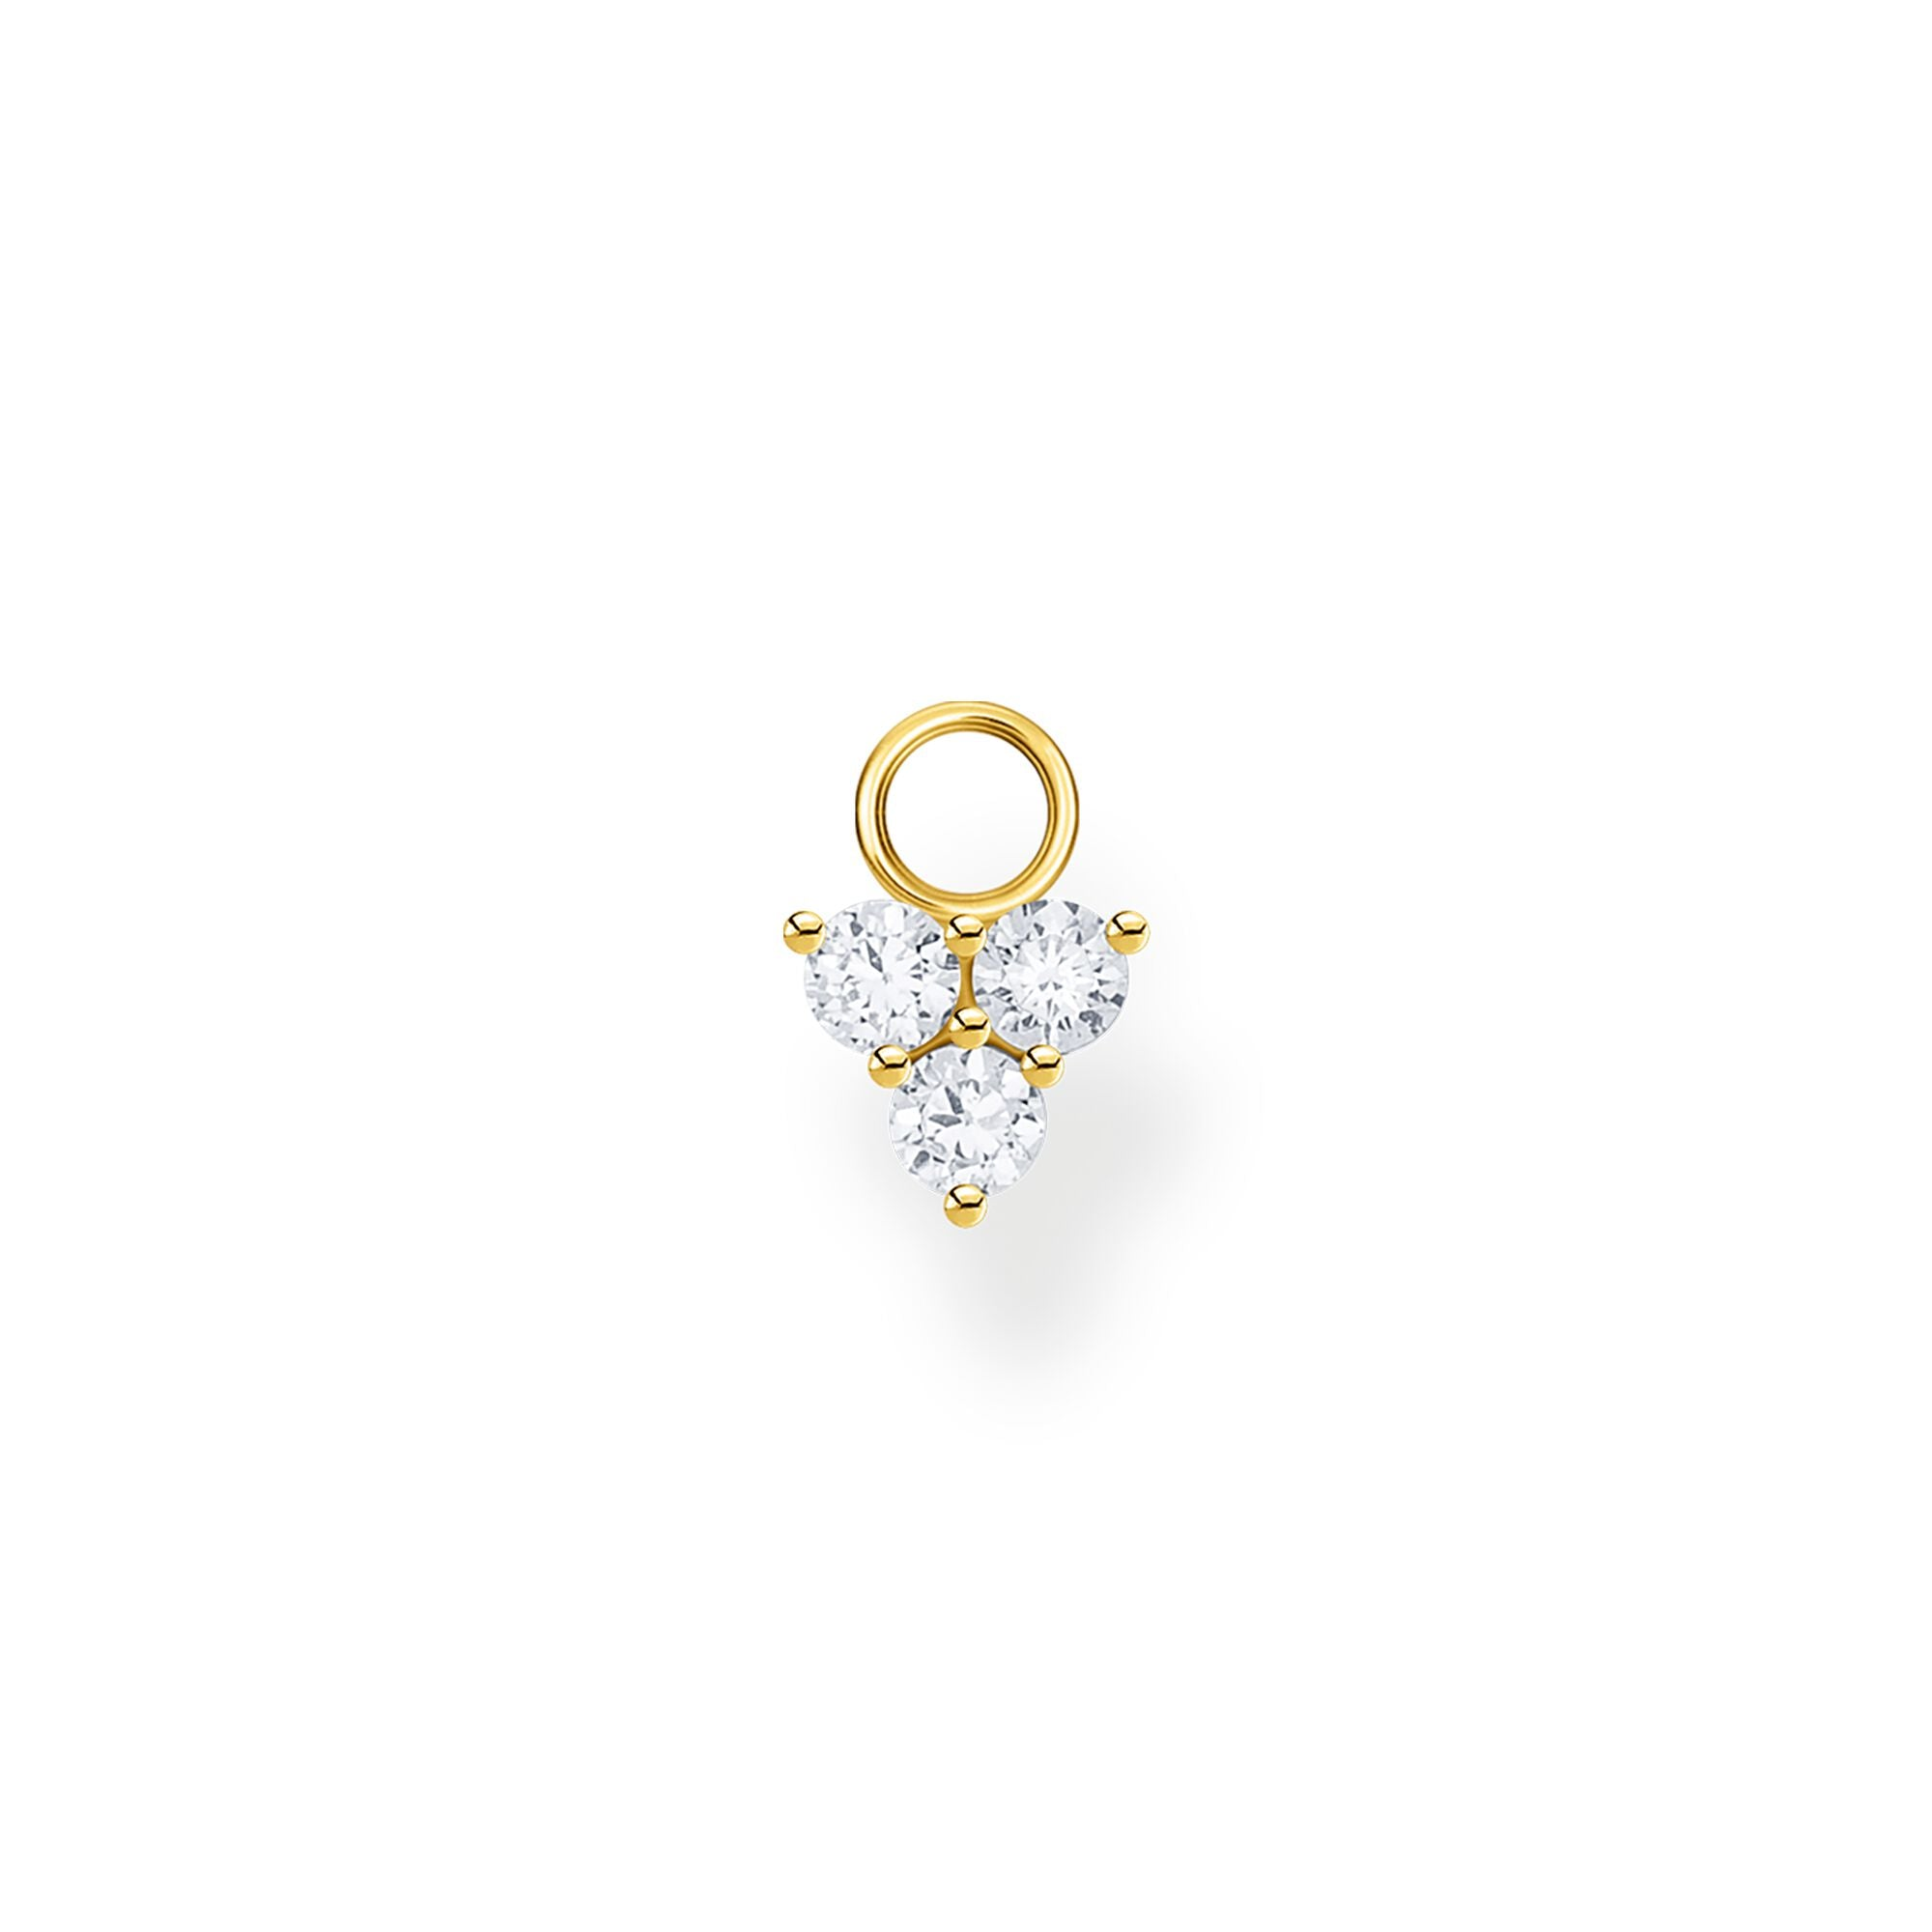 STERLING SILVER YELLOW GOLD PLATED CHARMING COLLECTION SINGLE CZ TRIANGLE EARRING PENDANT